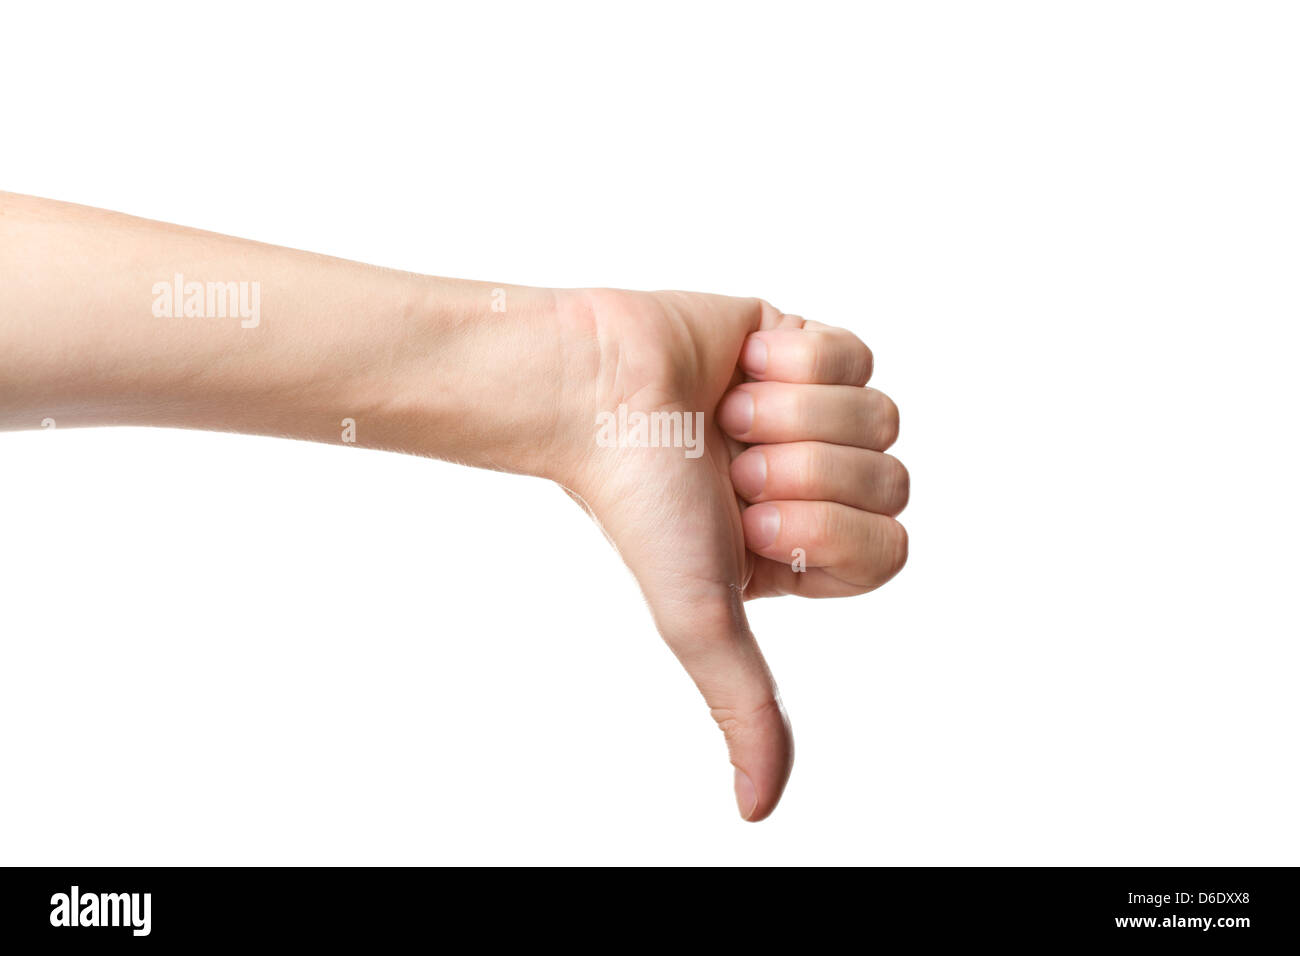 Thumbs down hand sign - Stock Image